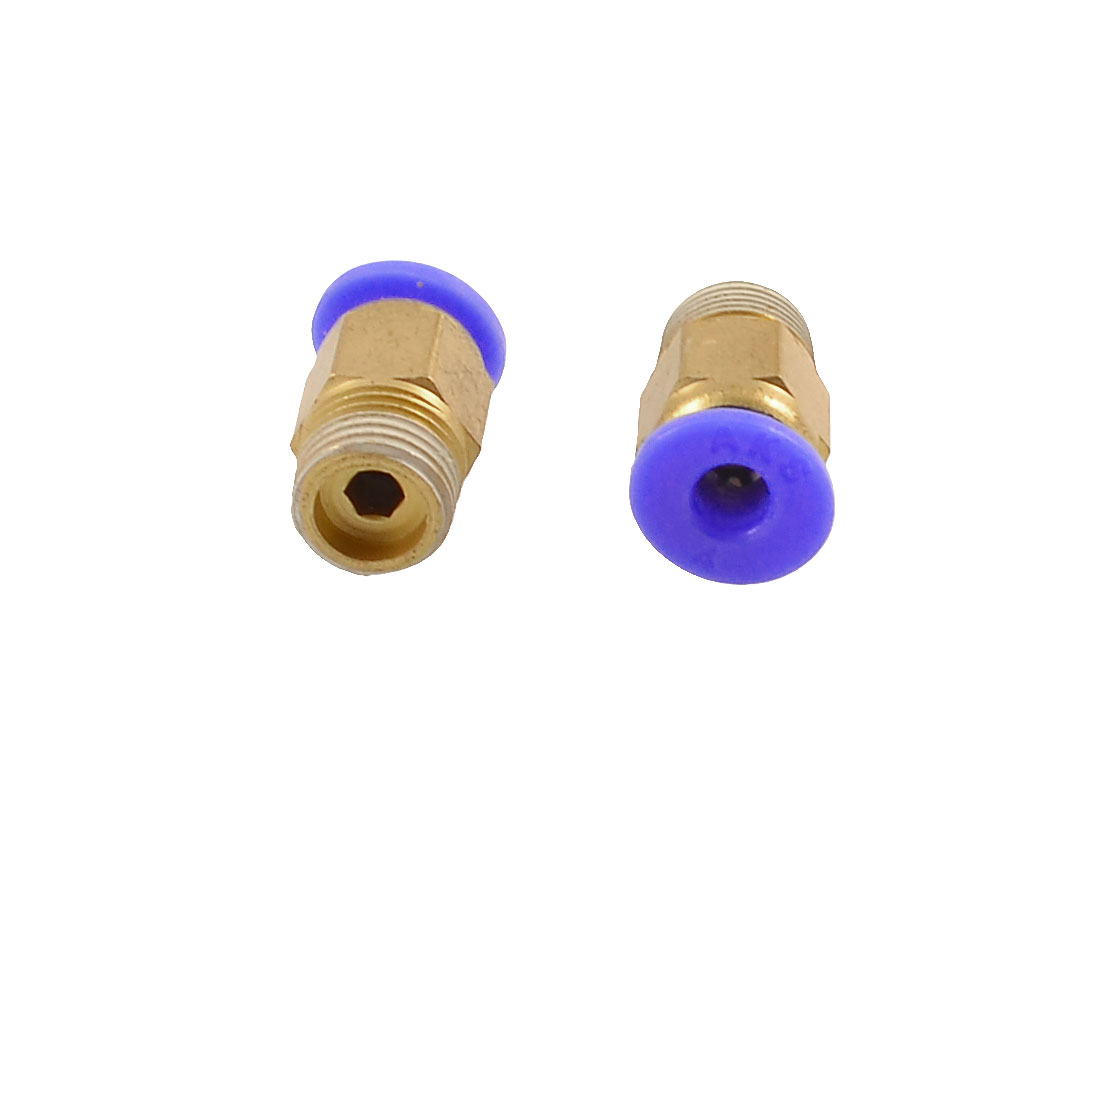 "5 x Pneumatic 1/8"" PT Thread Push In Connectors Fittings for 4mm Tube"